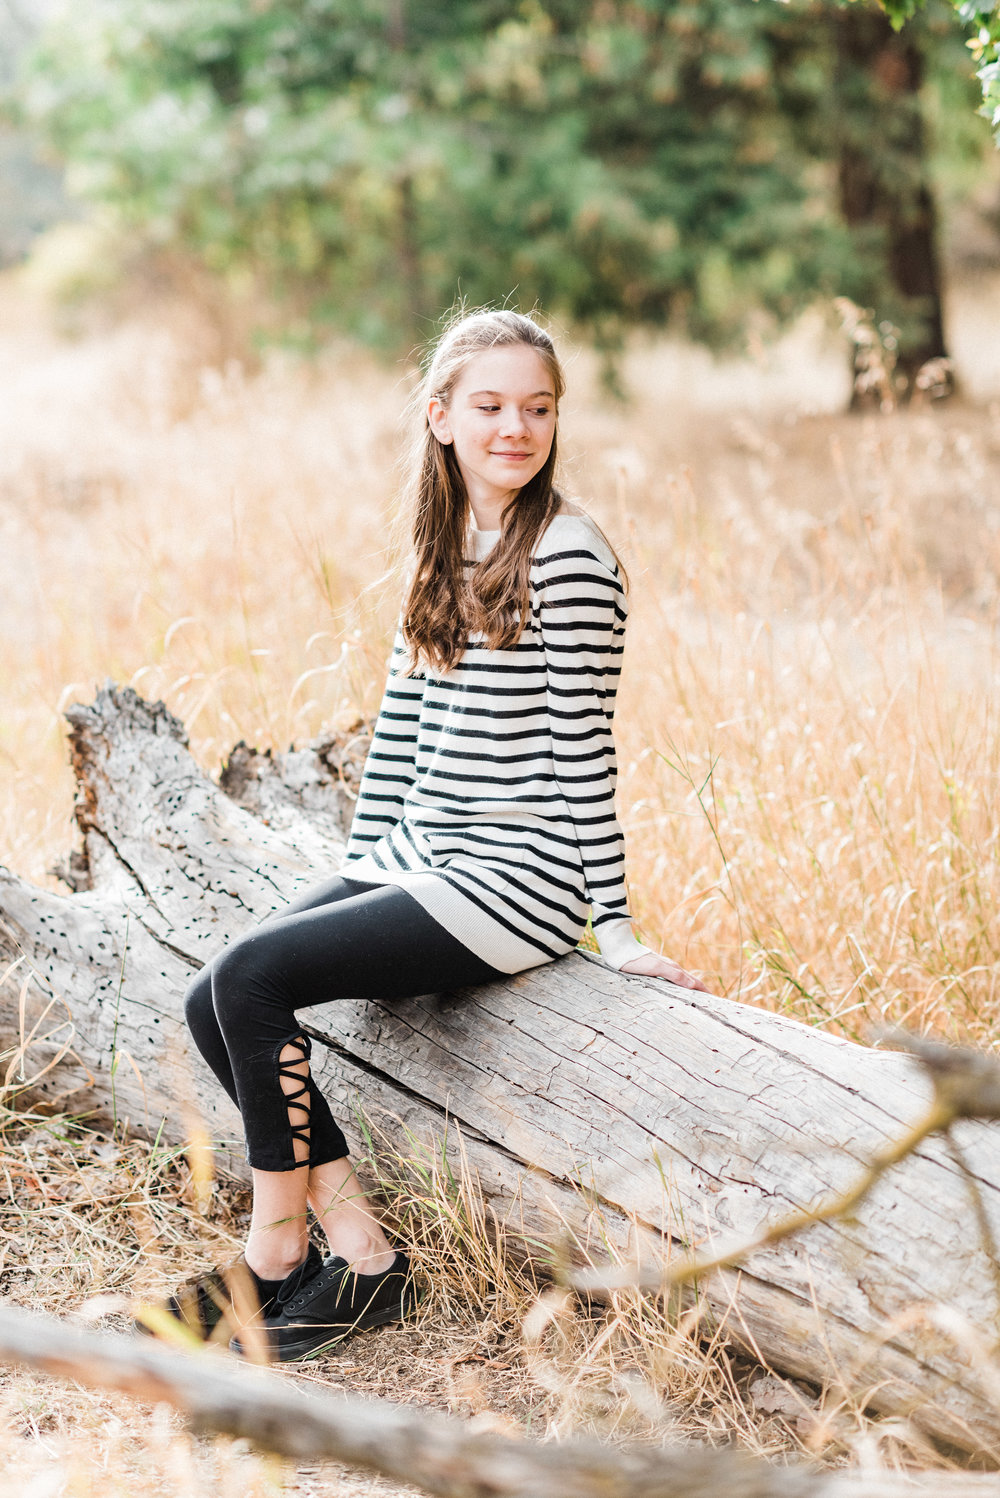 spokane_fall_family_photography_session (3 of 27).jpg